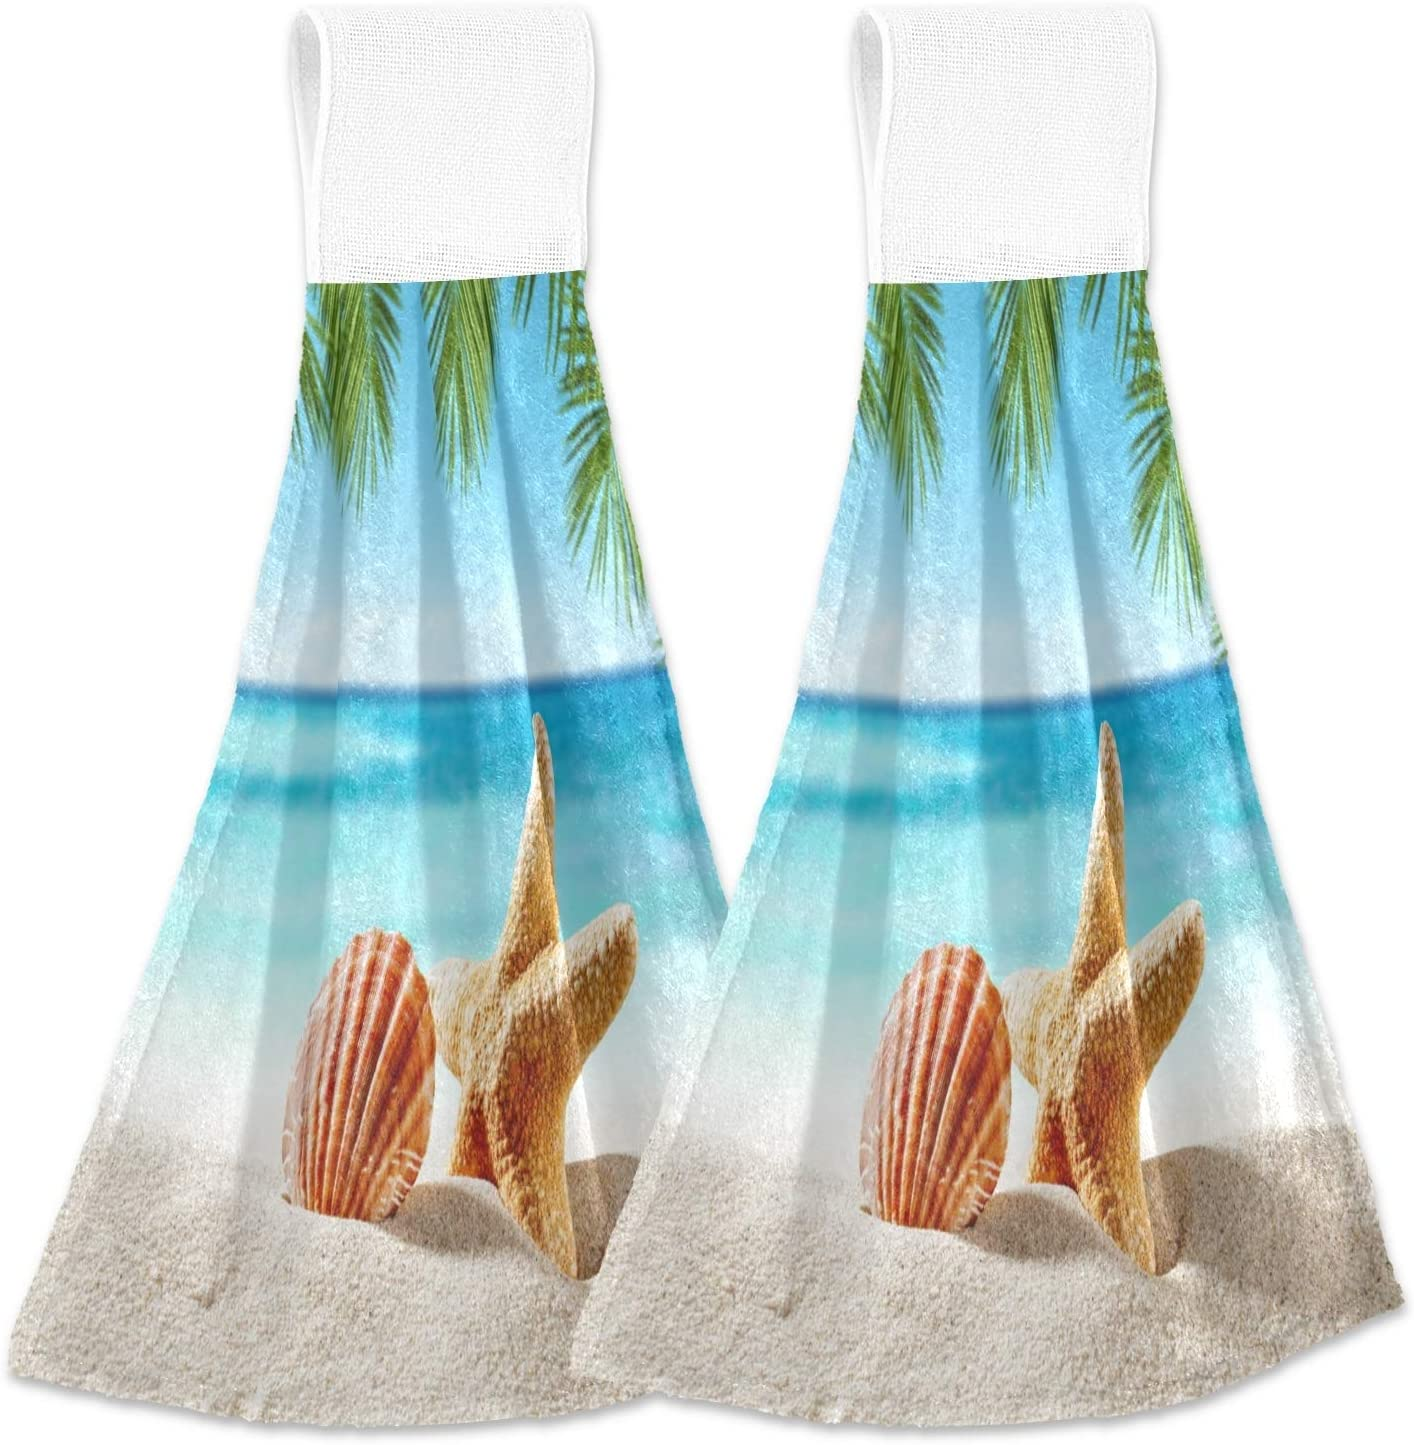 Alaza Shell on Beach and Summer Time Kitchen Towels with Hanging Loop Absorbent & Fast Drying Dishtowels Set of 2